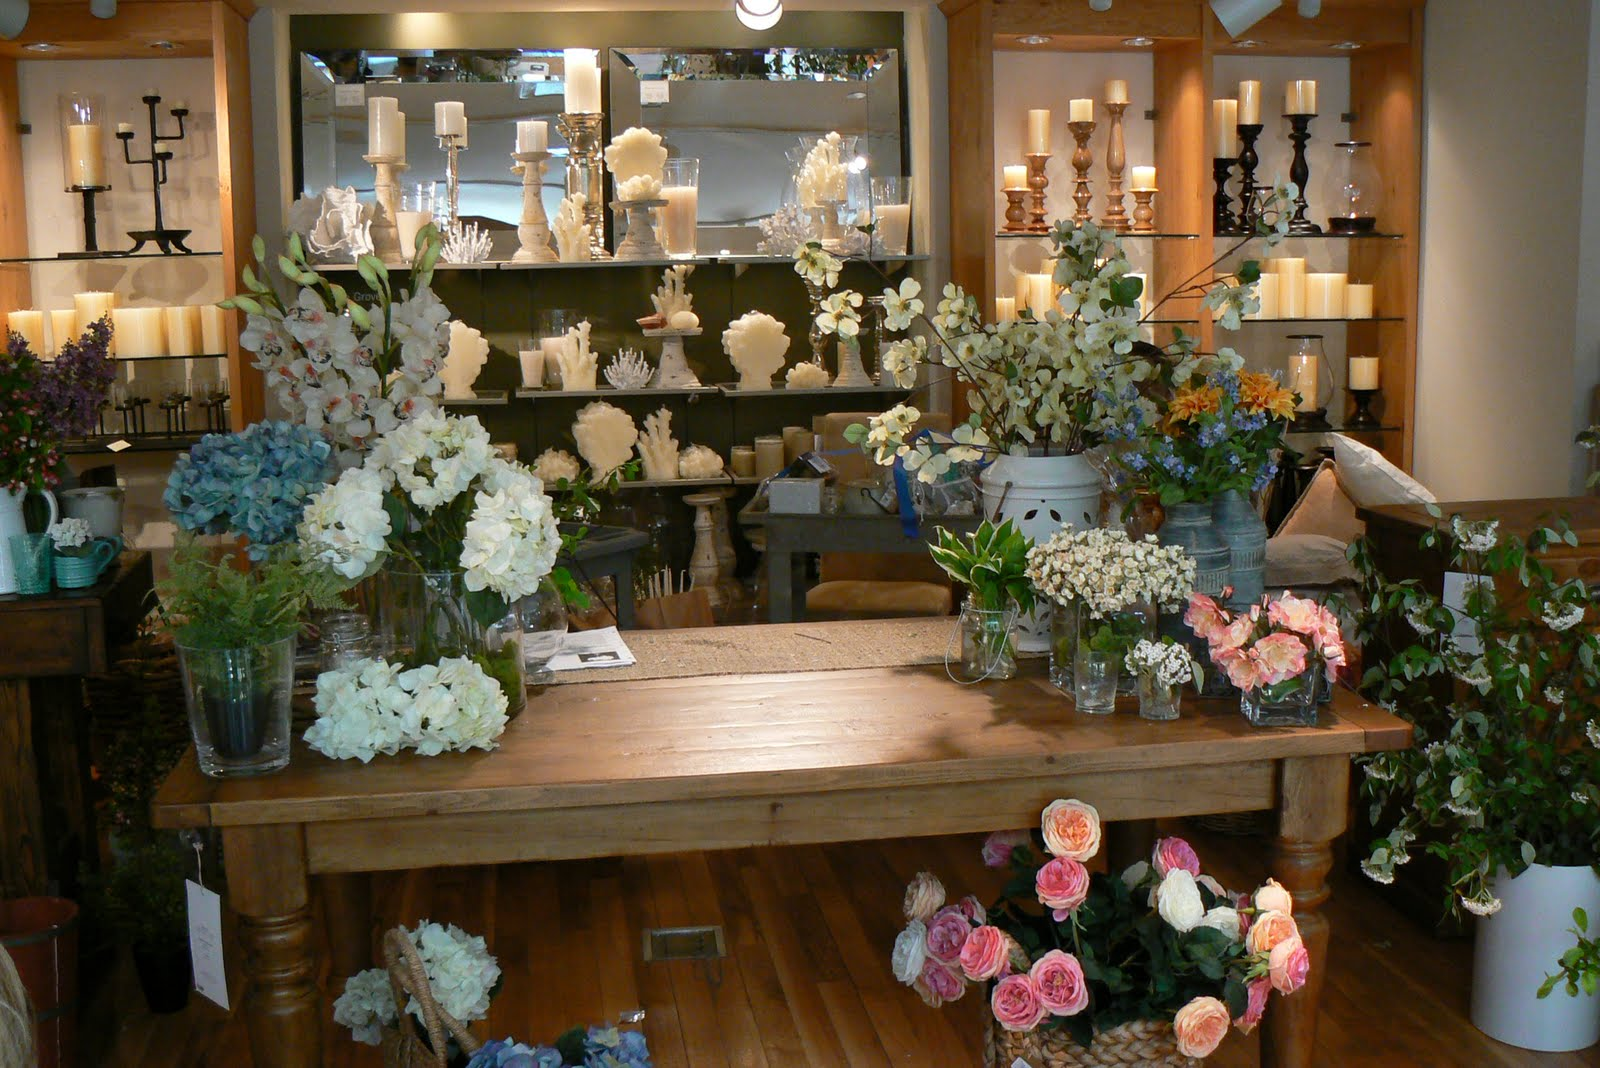 Tutu style pottery barn floral arranging class the first idea was on arranging large stems or branches in a large vase they recommended using an odd number of branches because it ends up looking better reviewsmspy